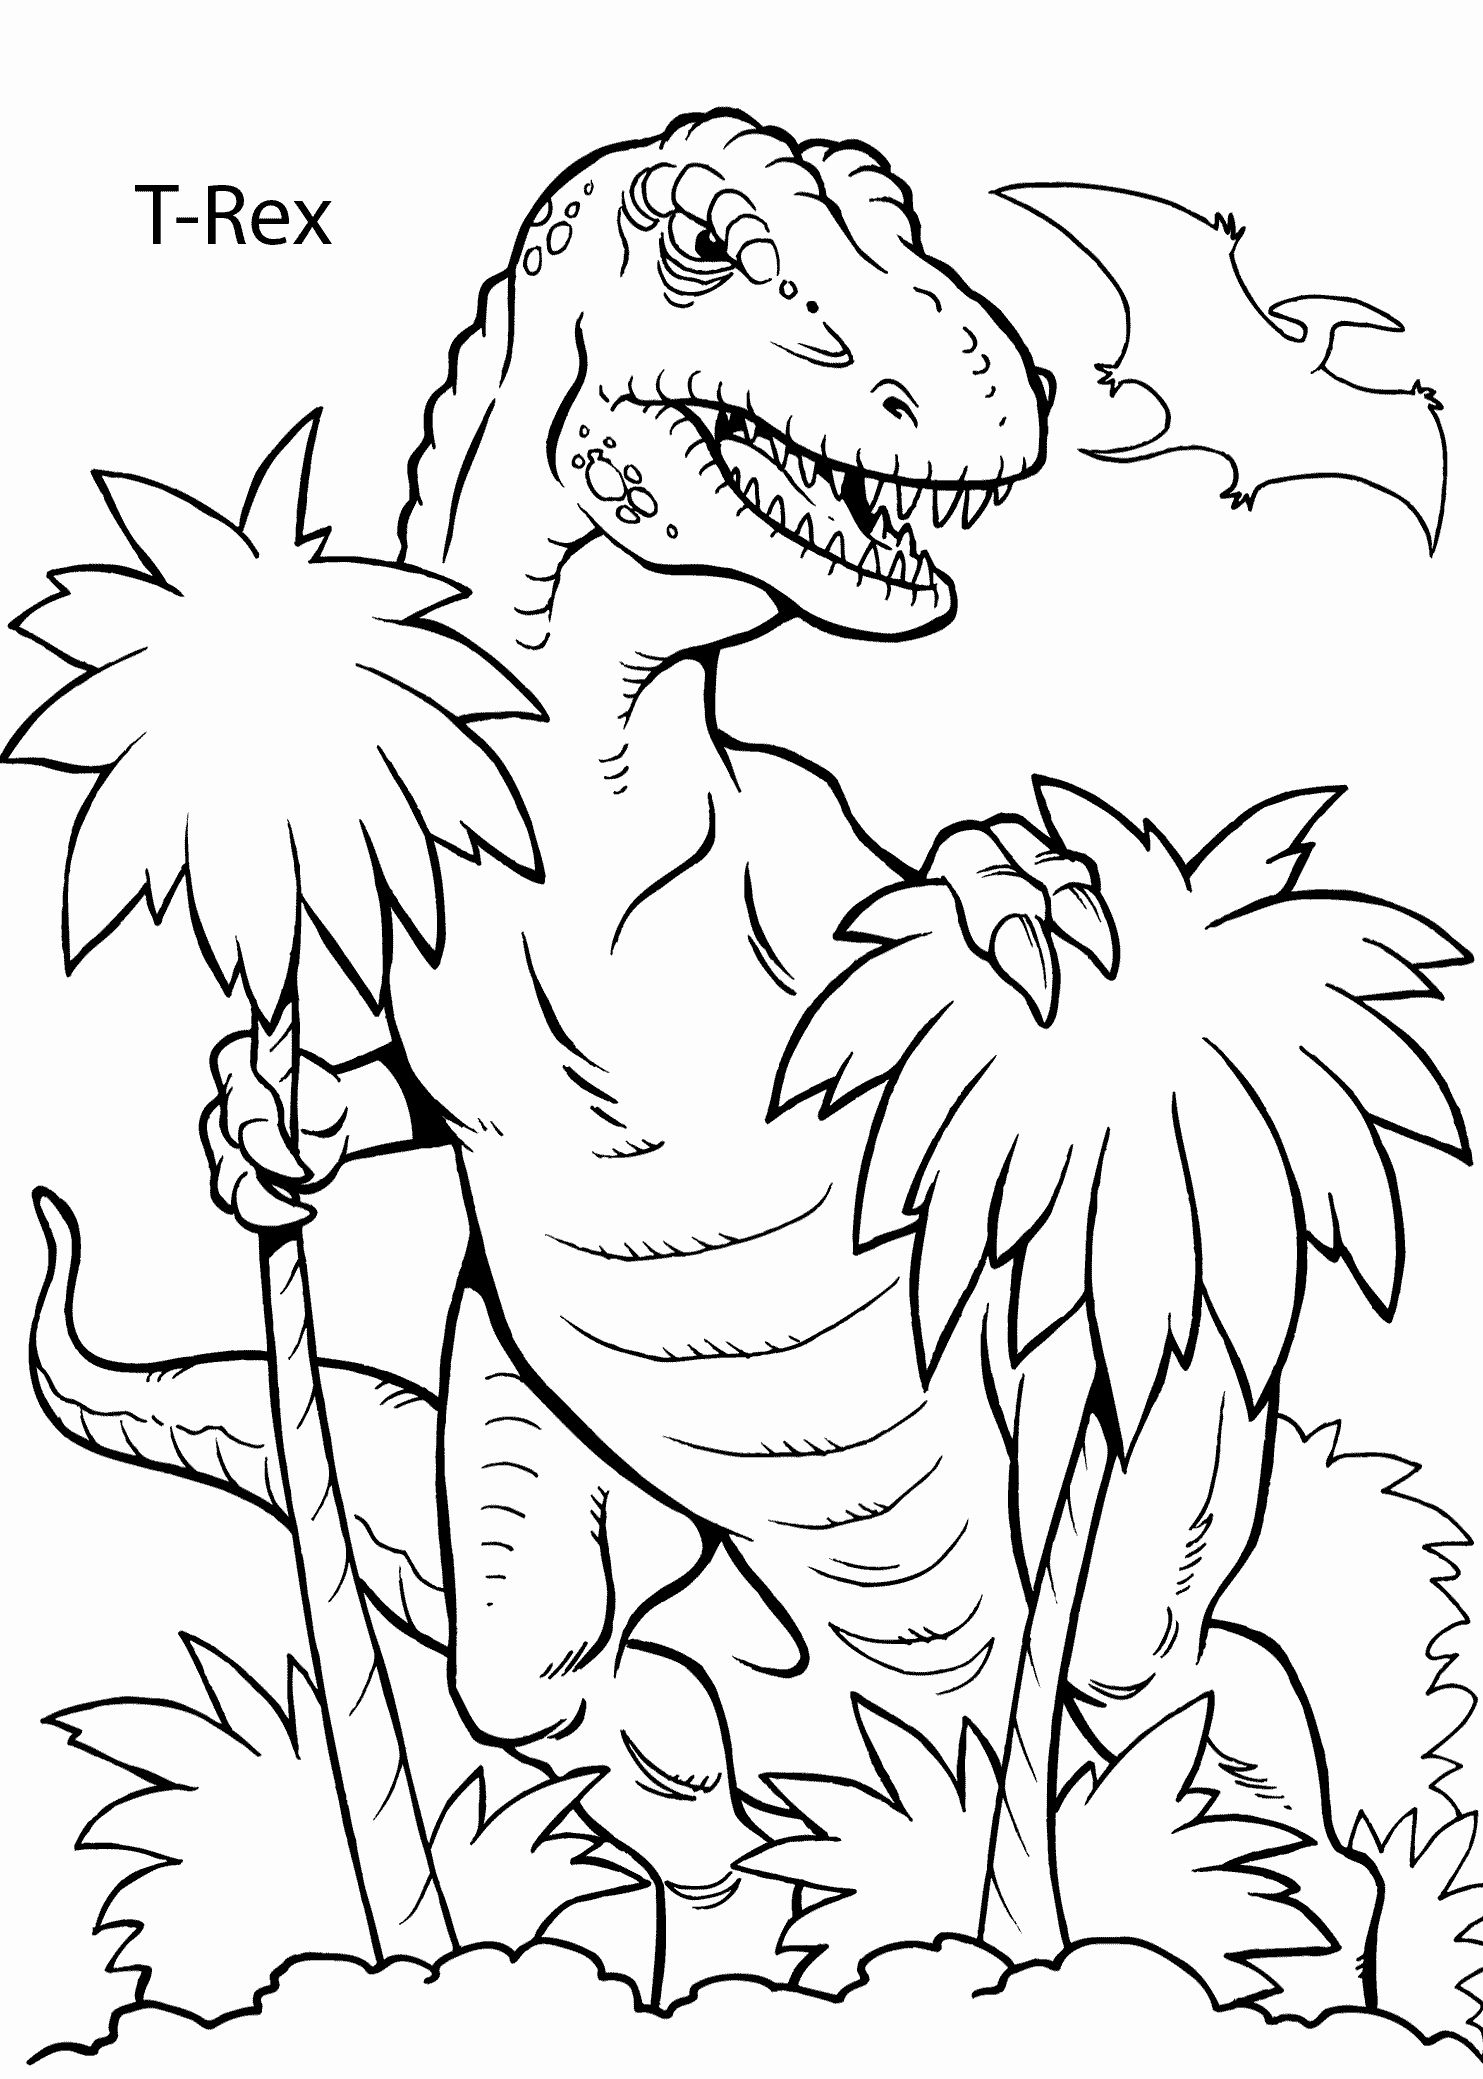 Nature Coloring Book Pdf Fresh Pin By Get Highit On Coloring Pages Spring Coloring Pages Animal Coloring Pages Dinosaur Coloring Sheets